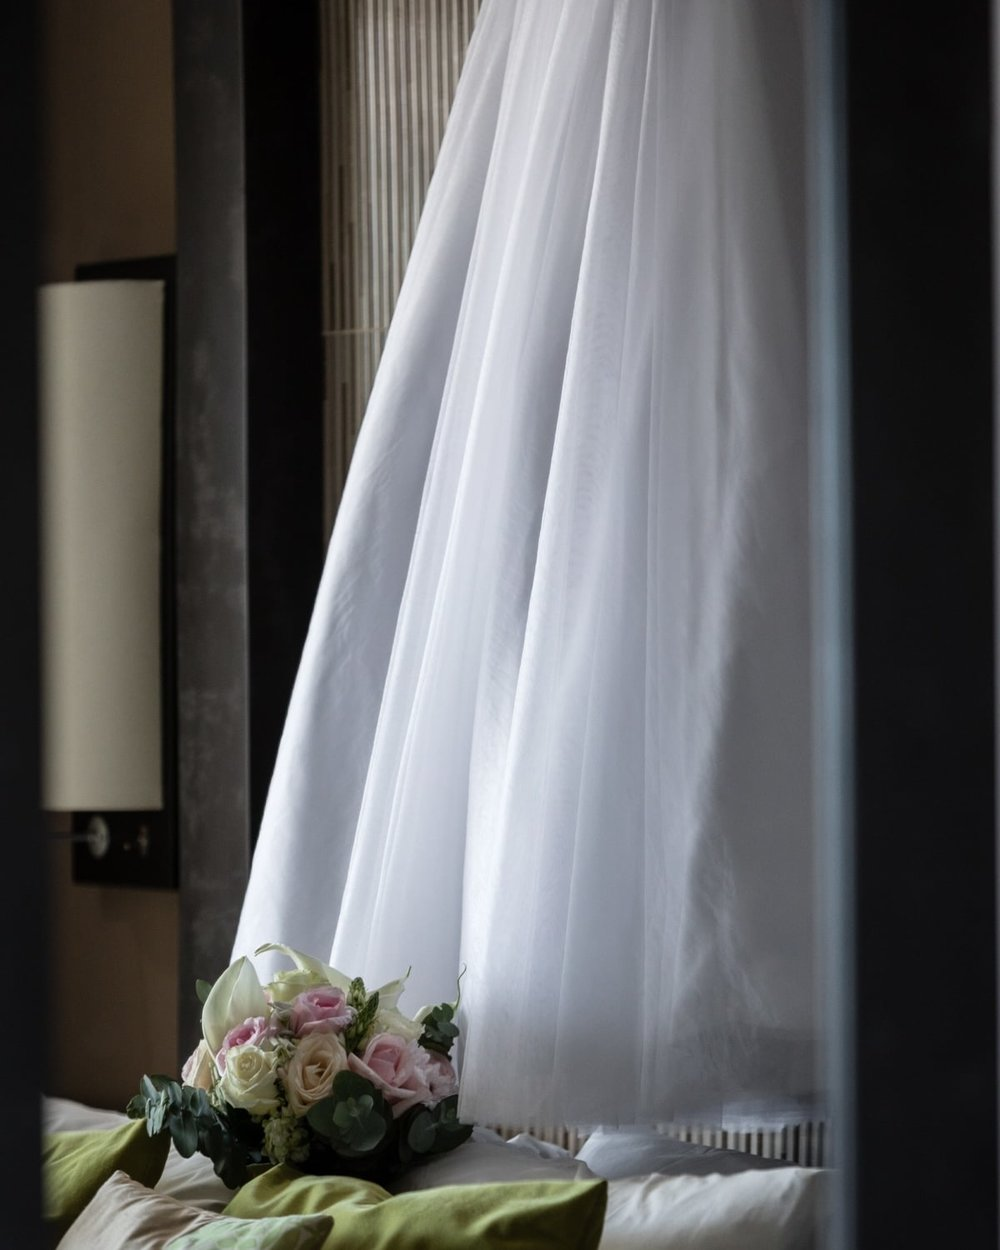 Reflection of bride's wedding dress in mirror in bridal suite.